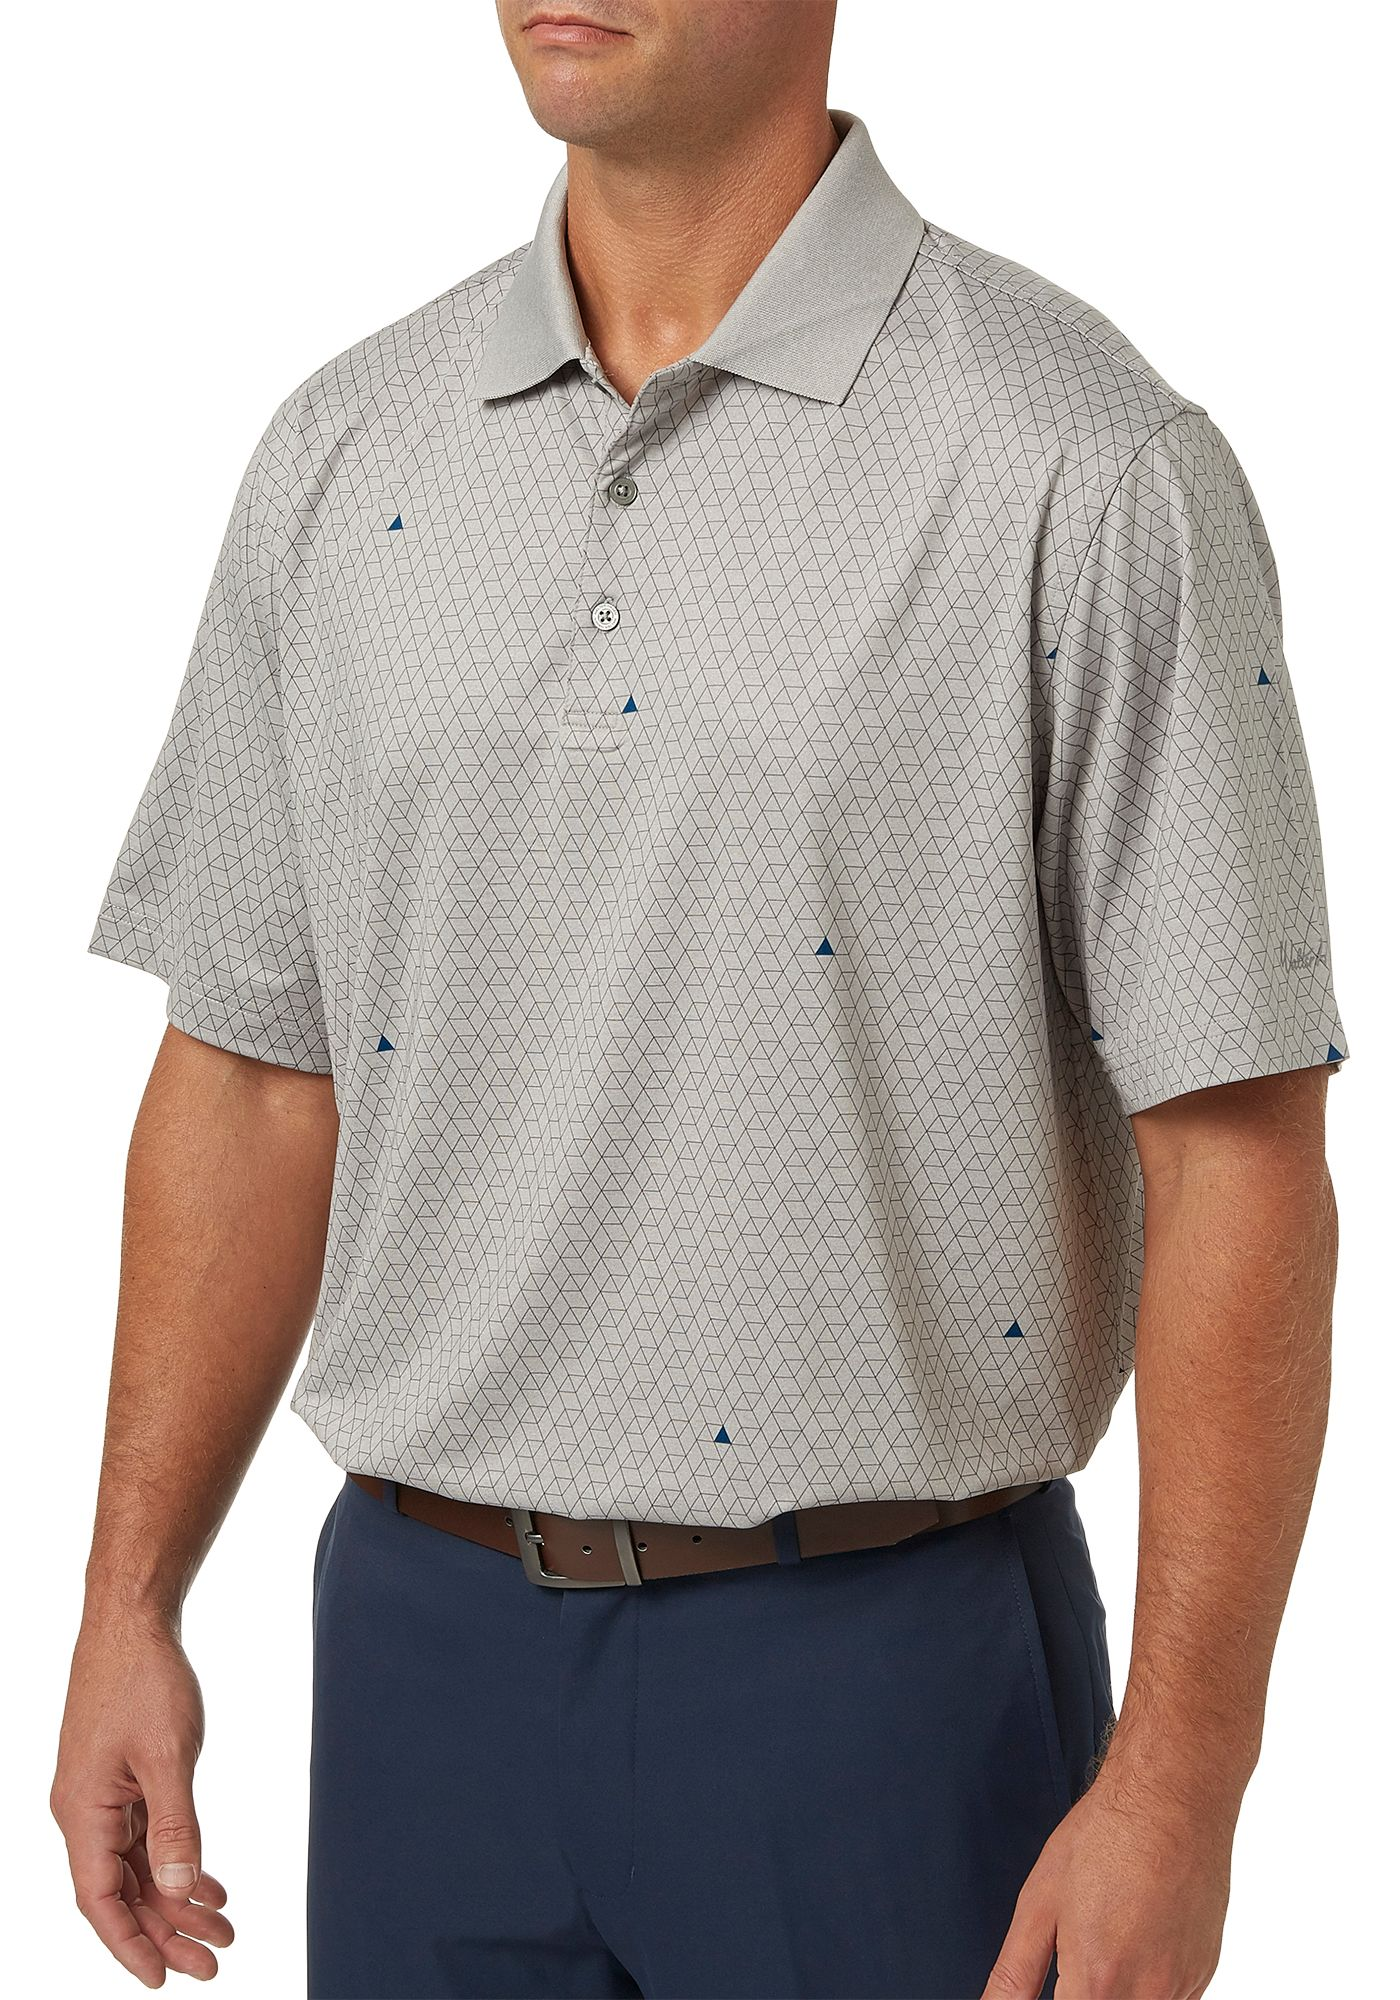 Walter Hagen Men's Geometric Printed Golf Polo